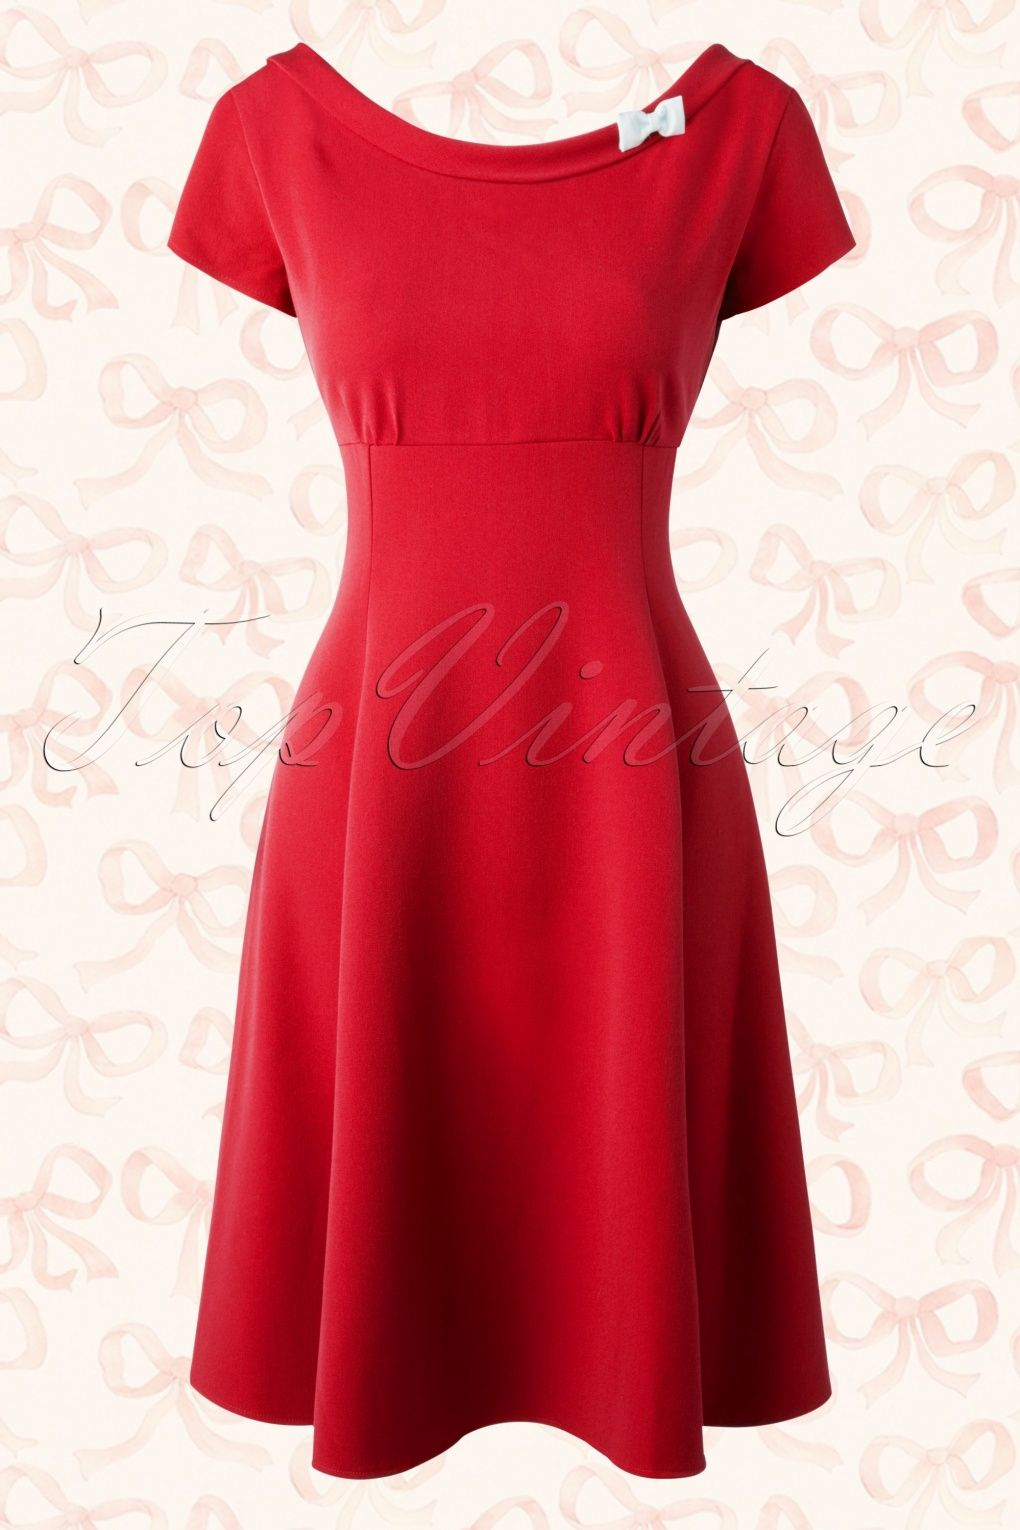 This s miriam bow swing dress is the perfect combination of